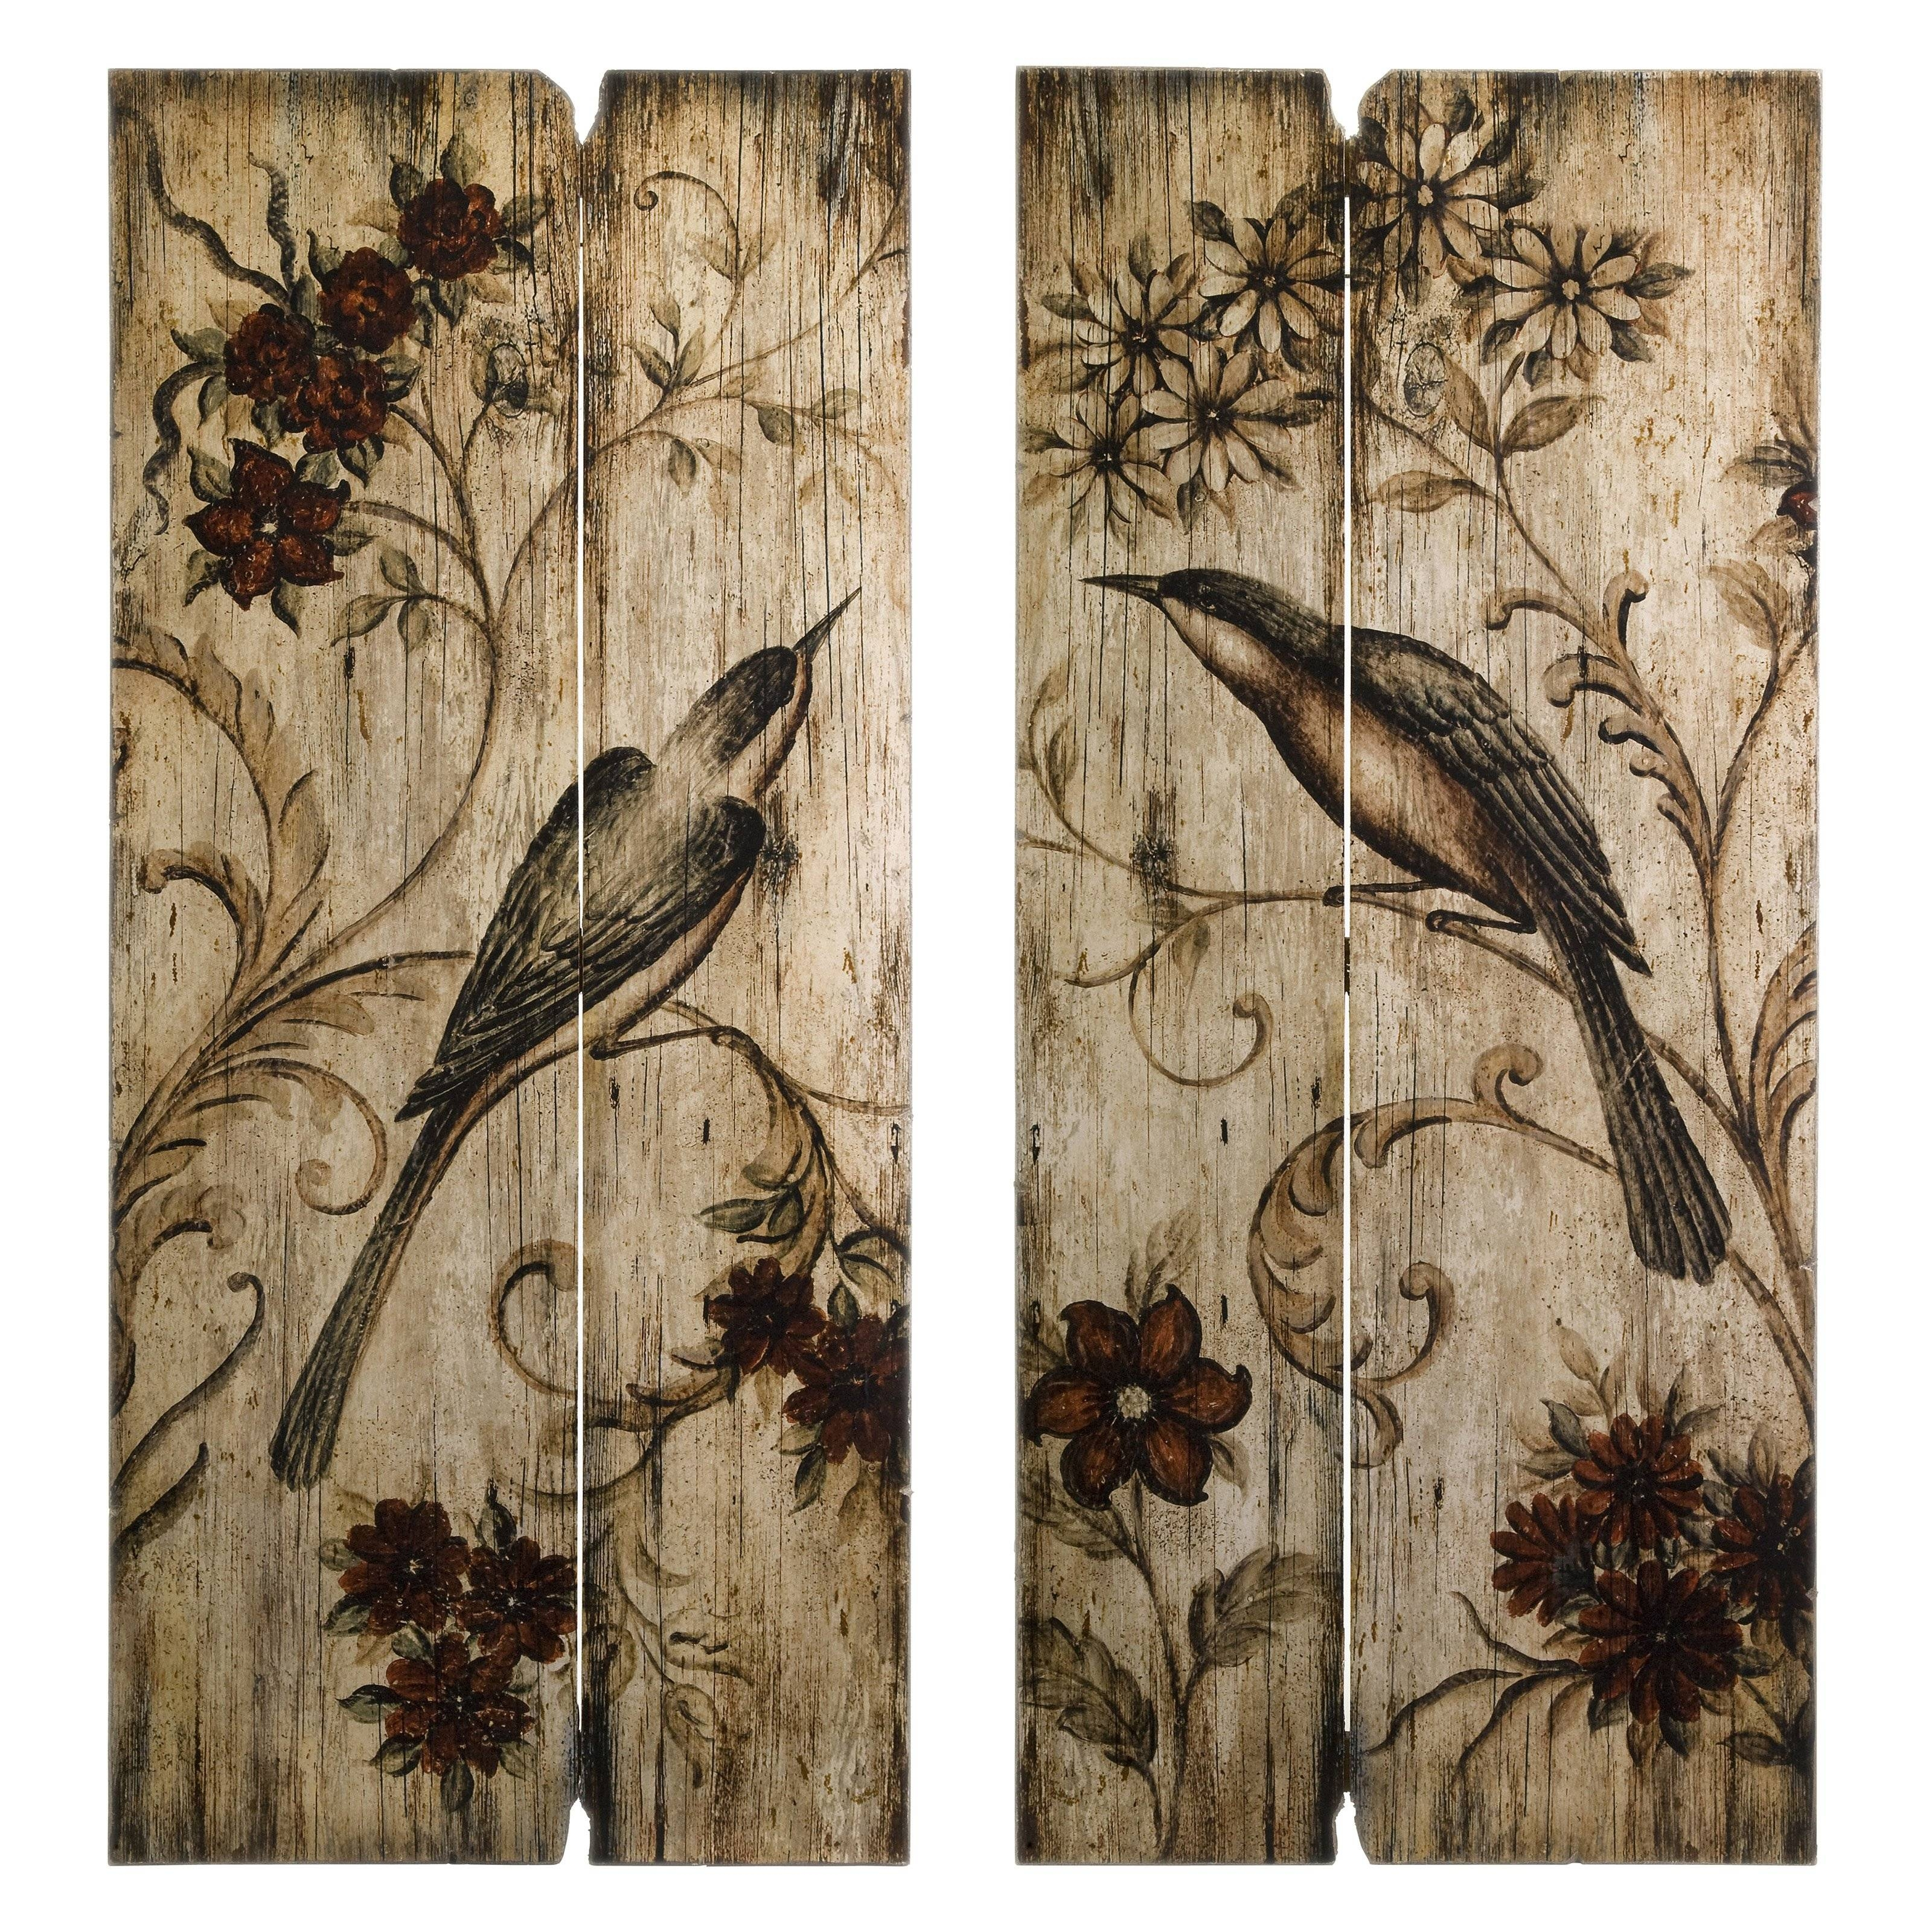 Imax Norida Bird Wood Wall Art – Set Of 2 | Hayneedle With Regard To Most Current Wooden Wall Art Panels (View 8 of 20)